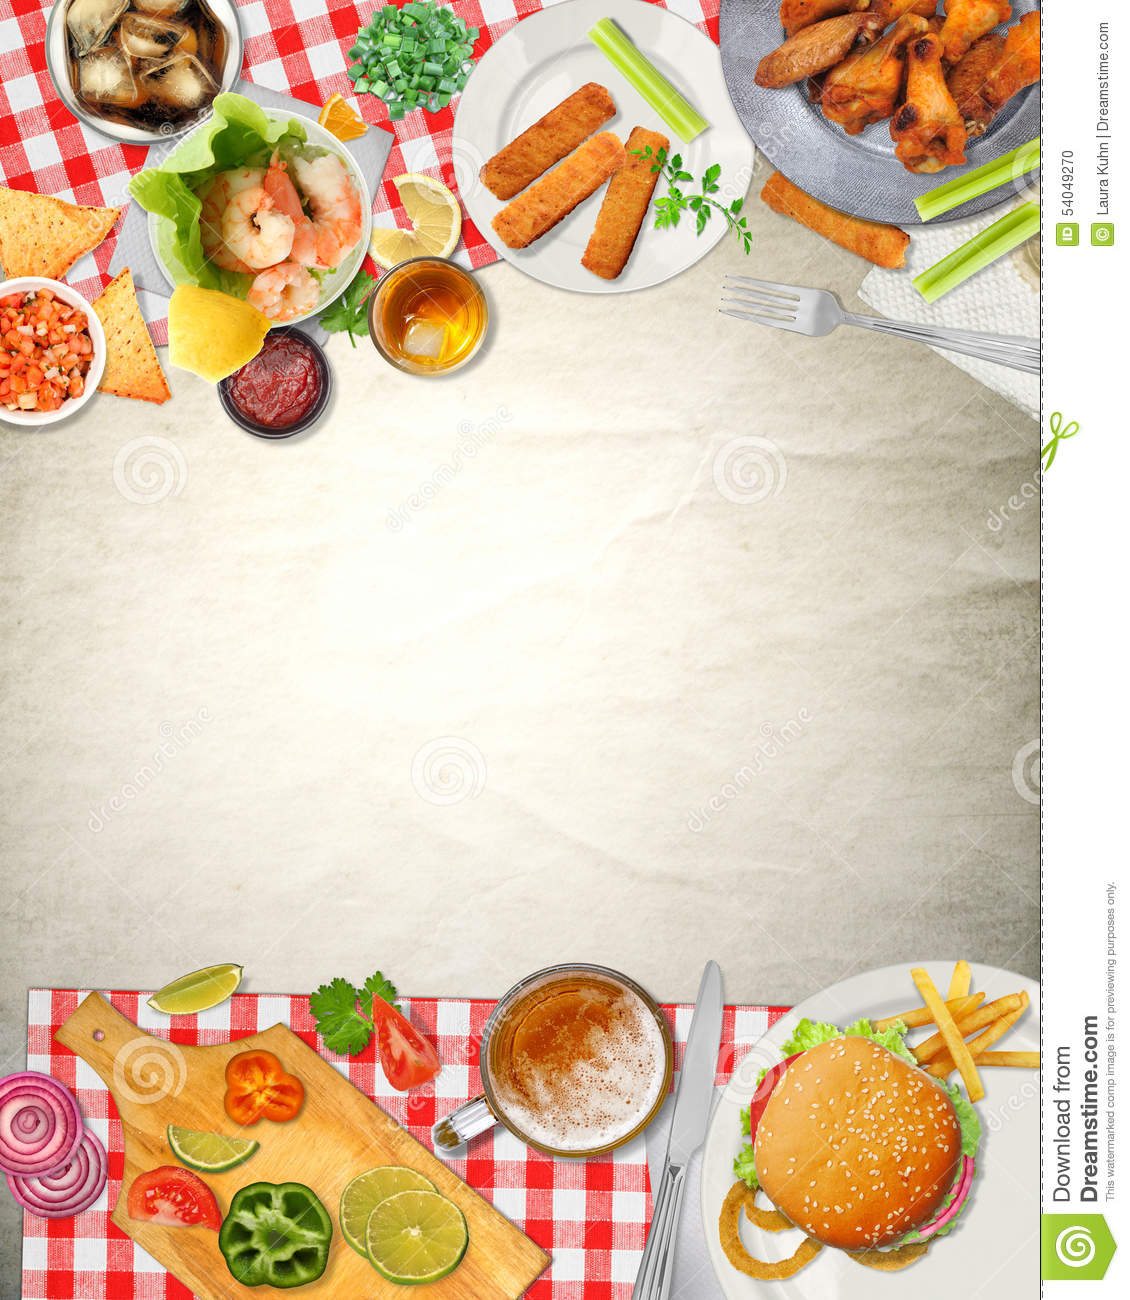 background art bar picnic cuisine food stock illustration